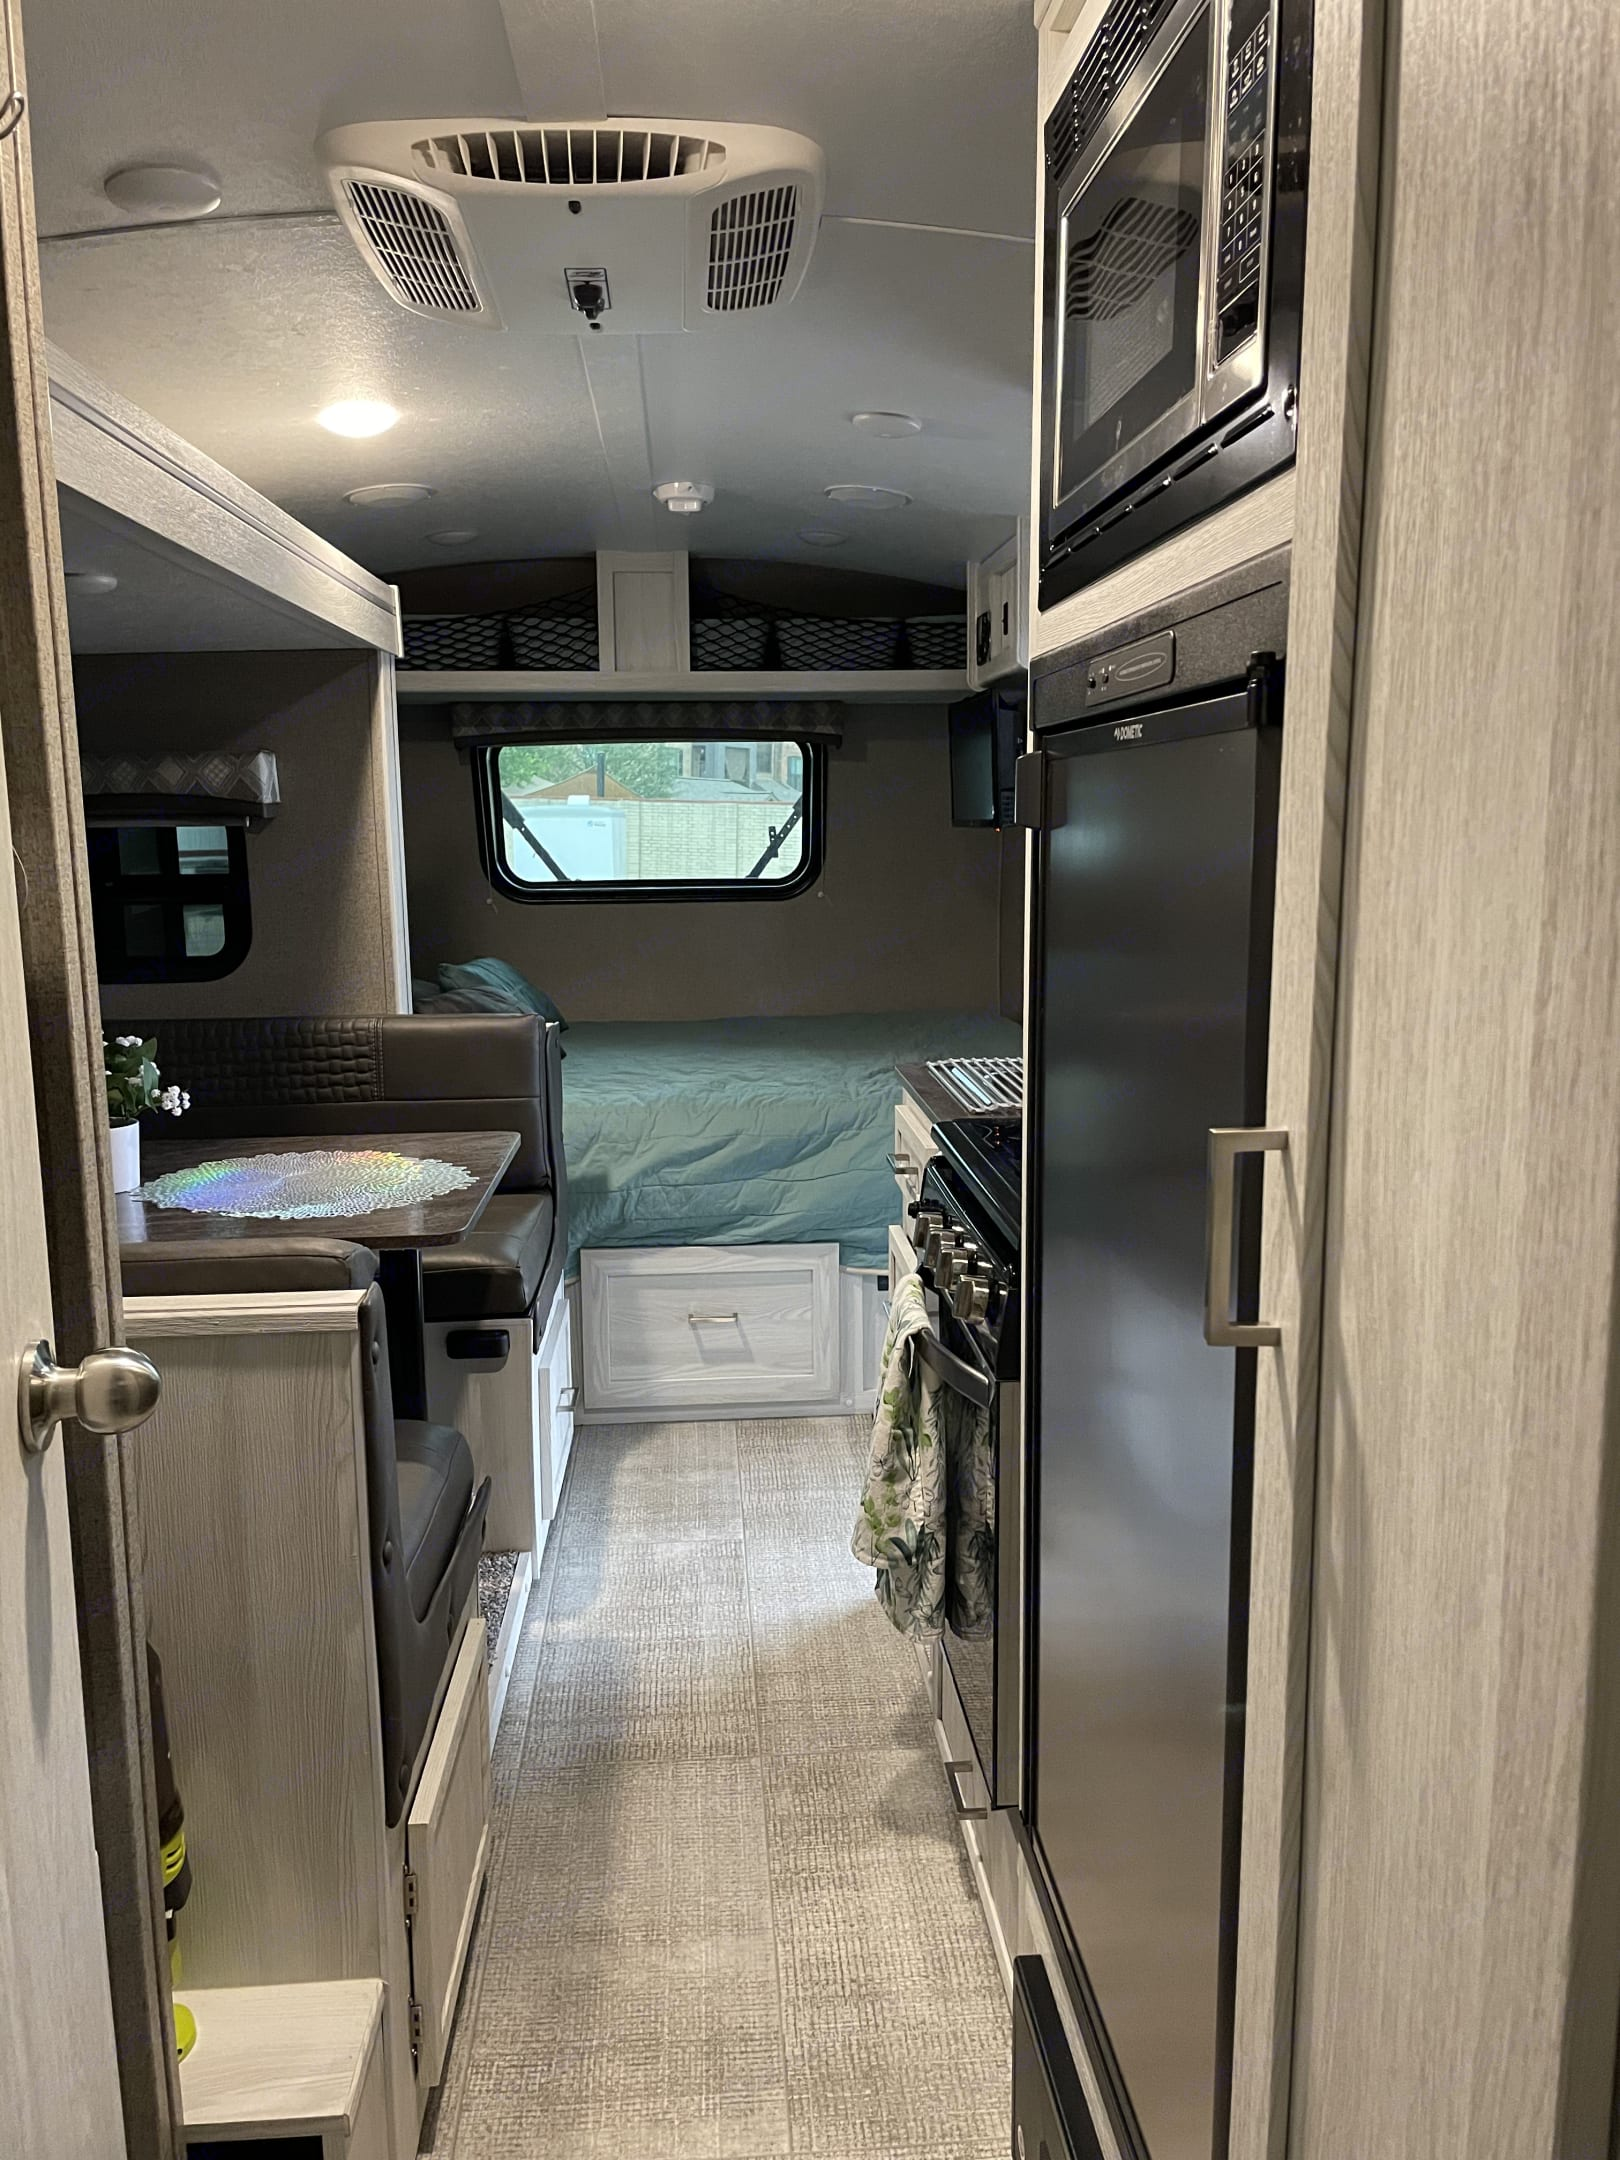 Note: Rv not extended all the way due to being in storage.  It opens up a lot more. . Flagstaff E-Pro 20 BHS 2021